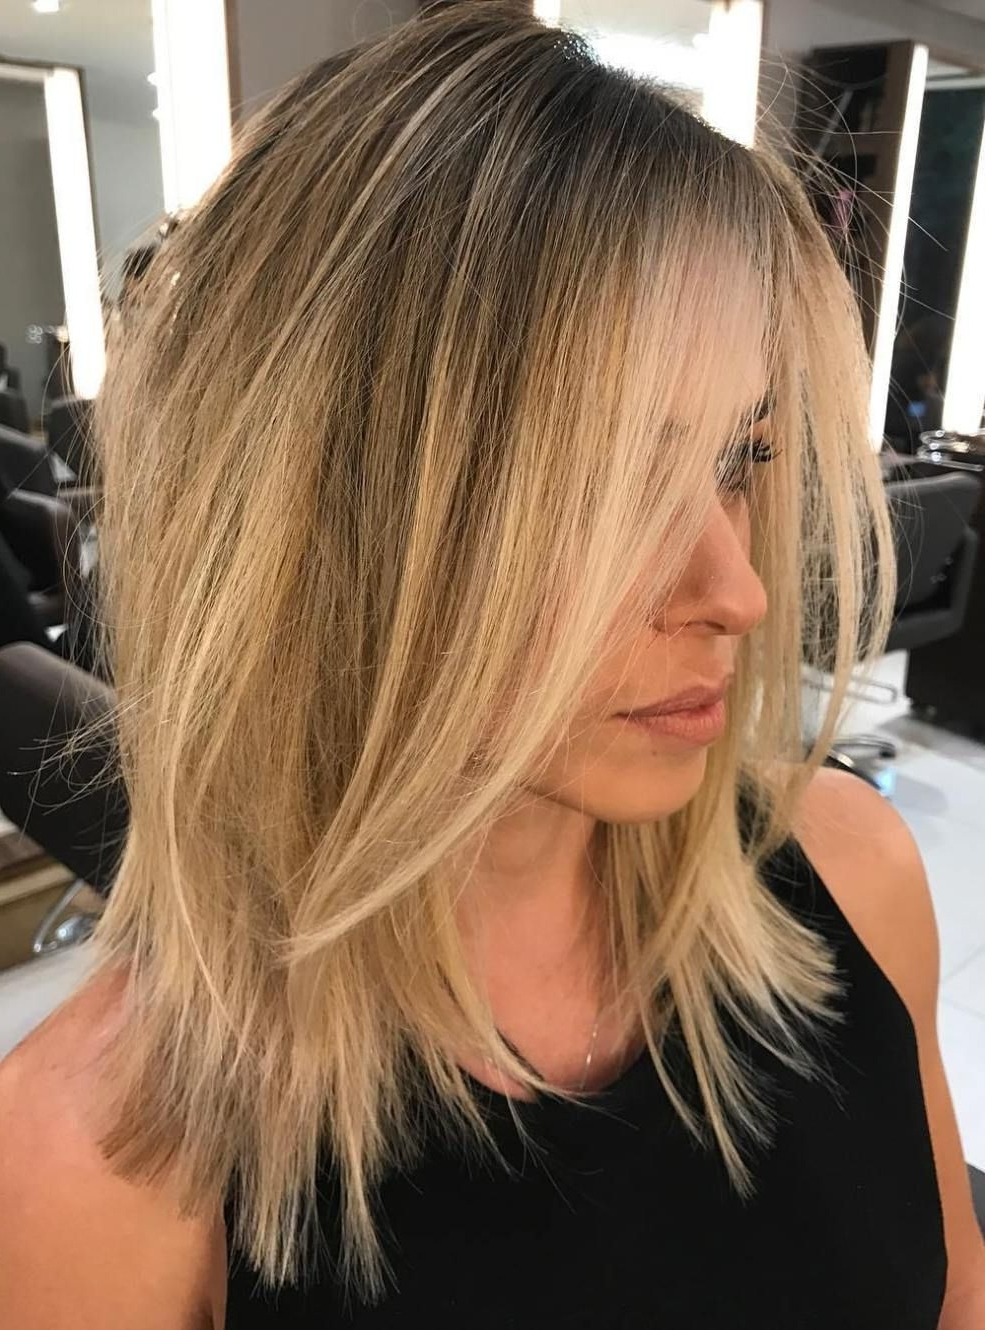 Preferred Choppy Cut Blonde Hairstyles With Bright Frame Inside 70 Devastatingly Cool Haircuts For Thin Hair (View 4 of 20)